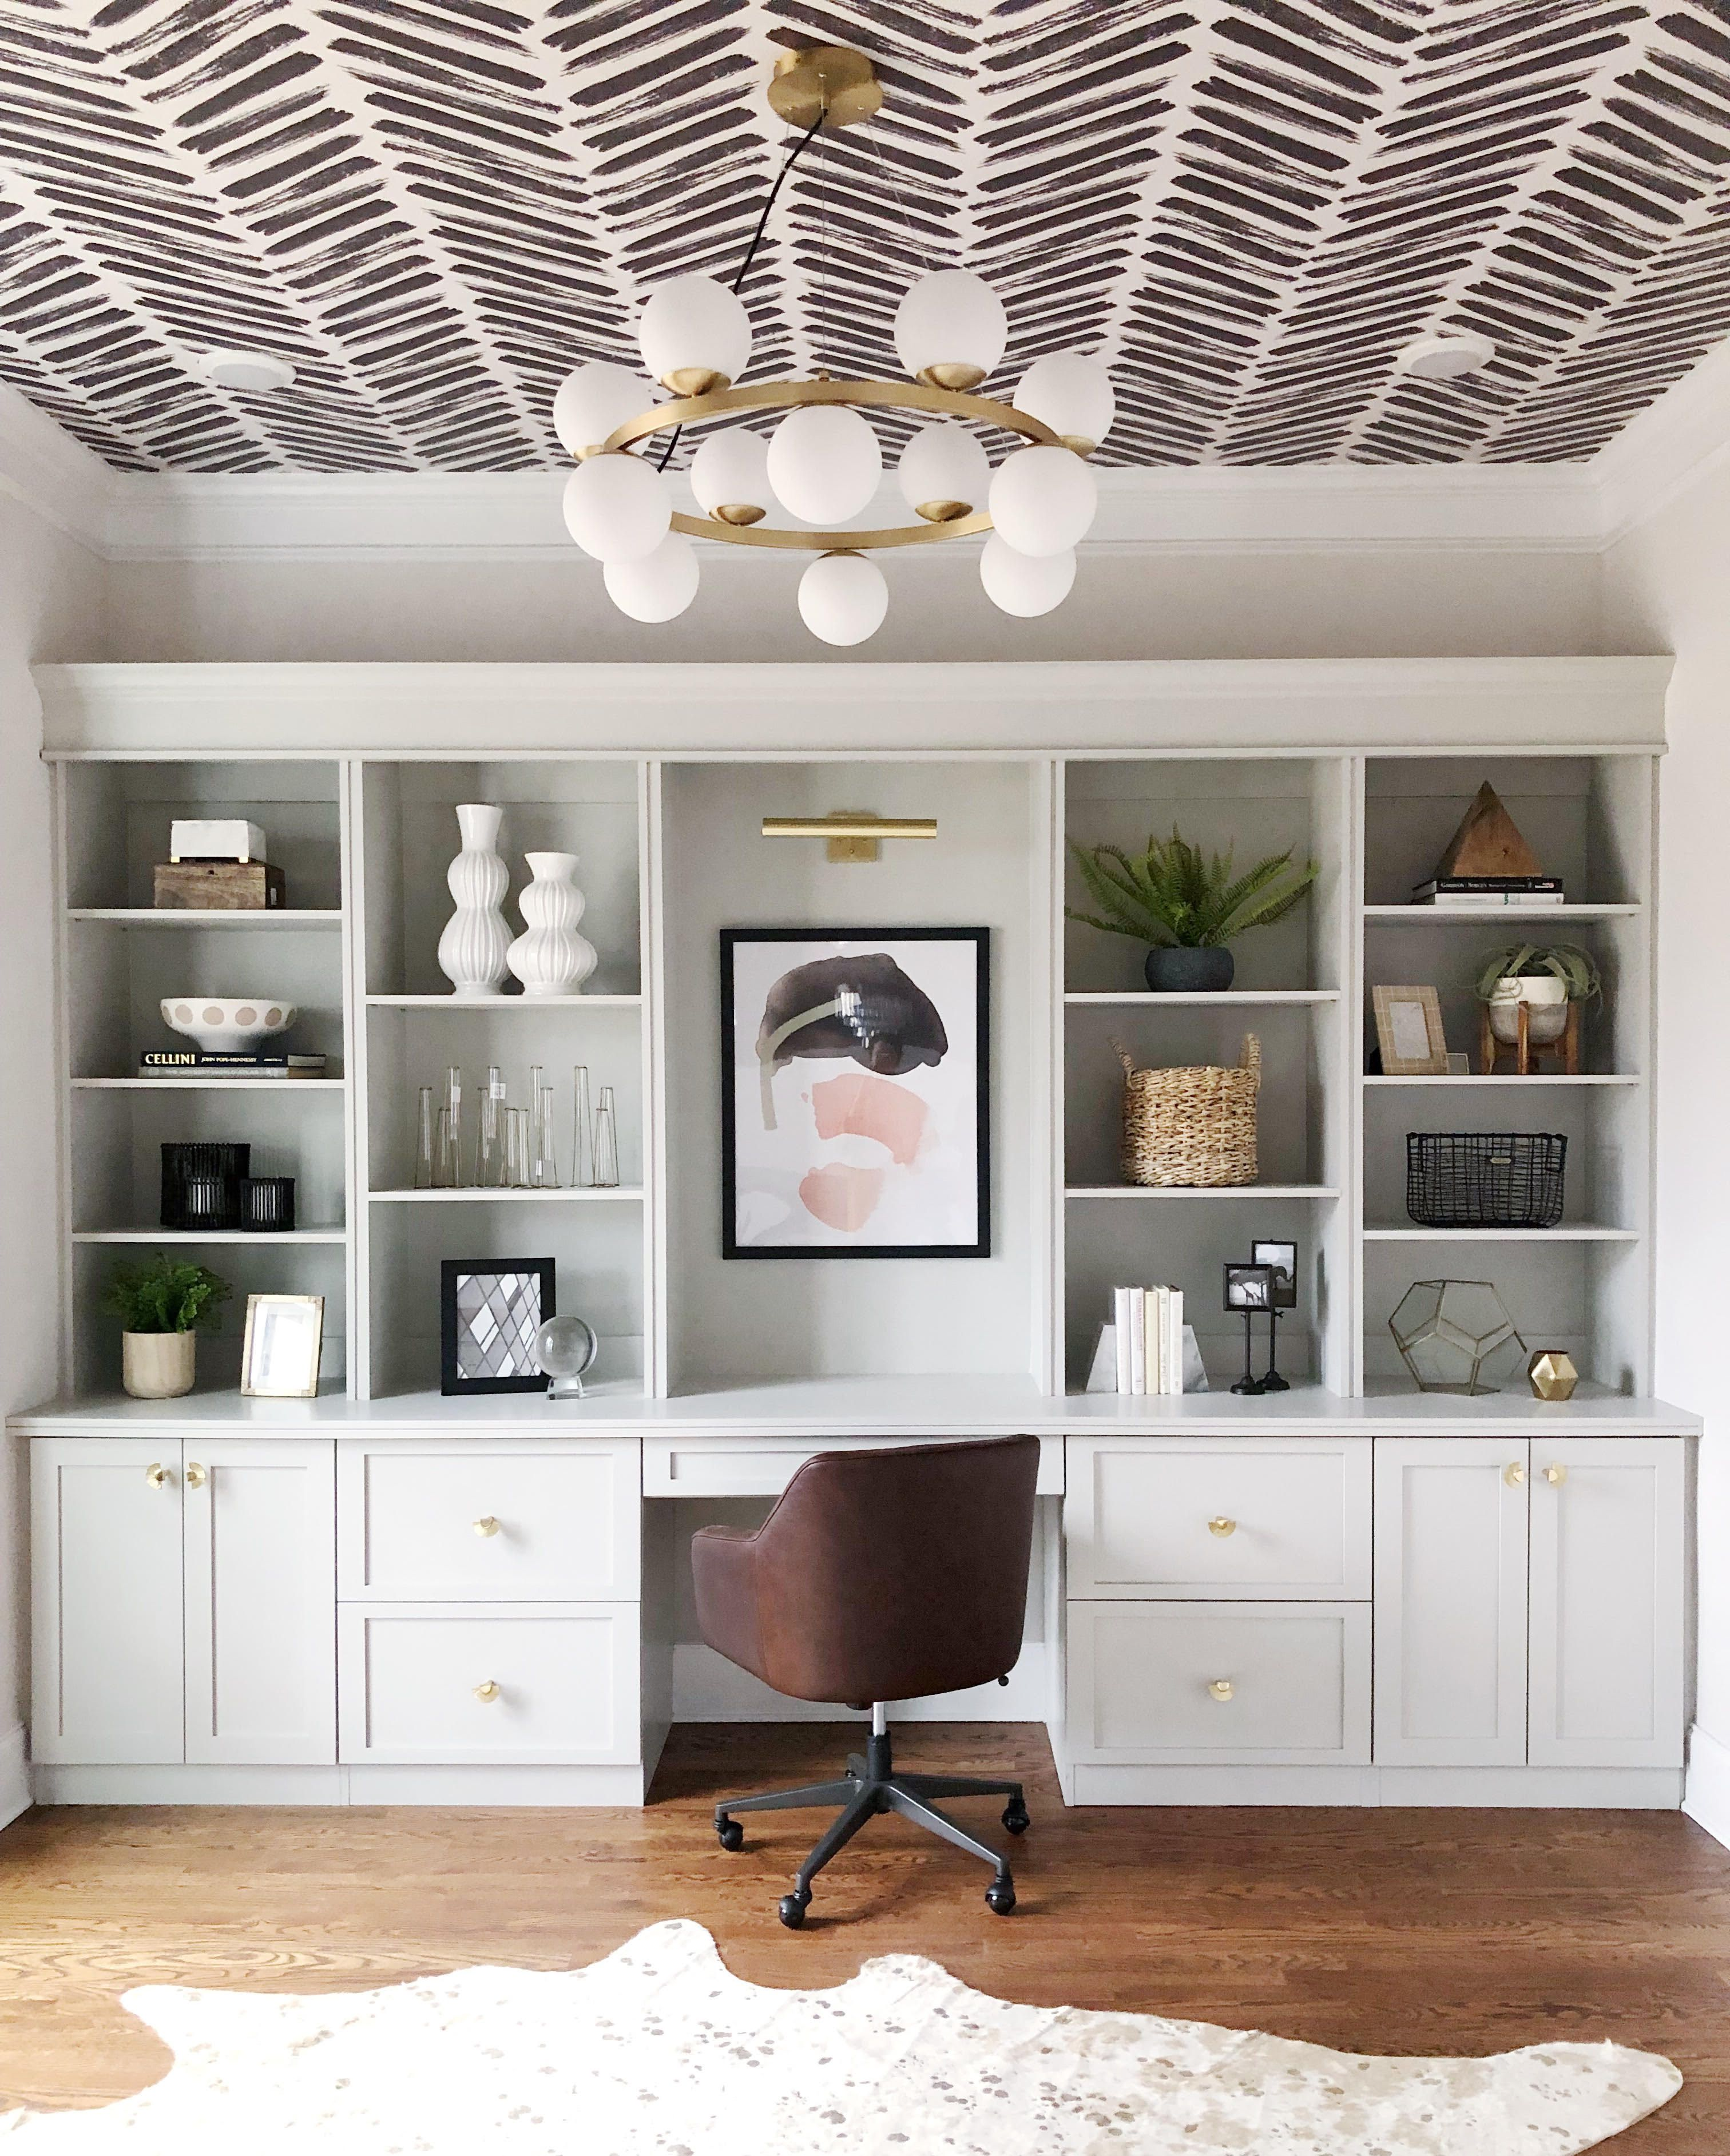 7 Wallpaper On The Ceiling Ideas To Try Now Home Home Office Decor Home Office Design